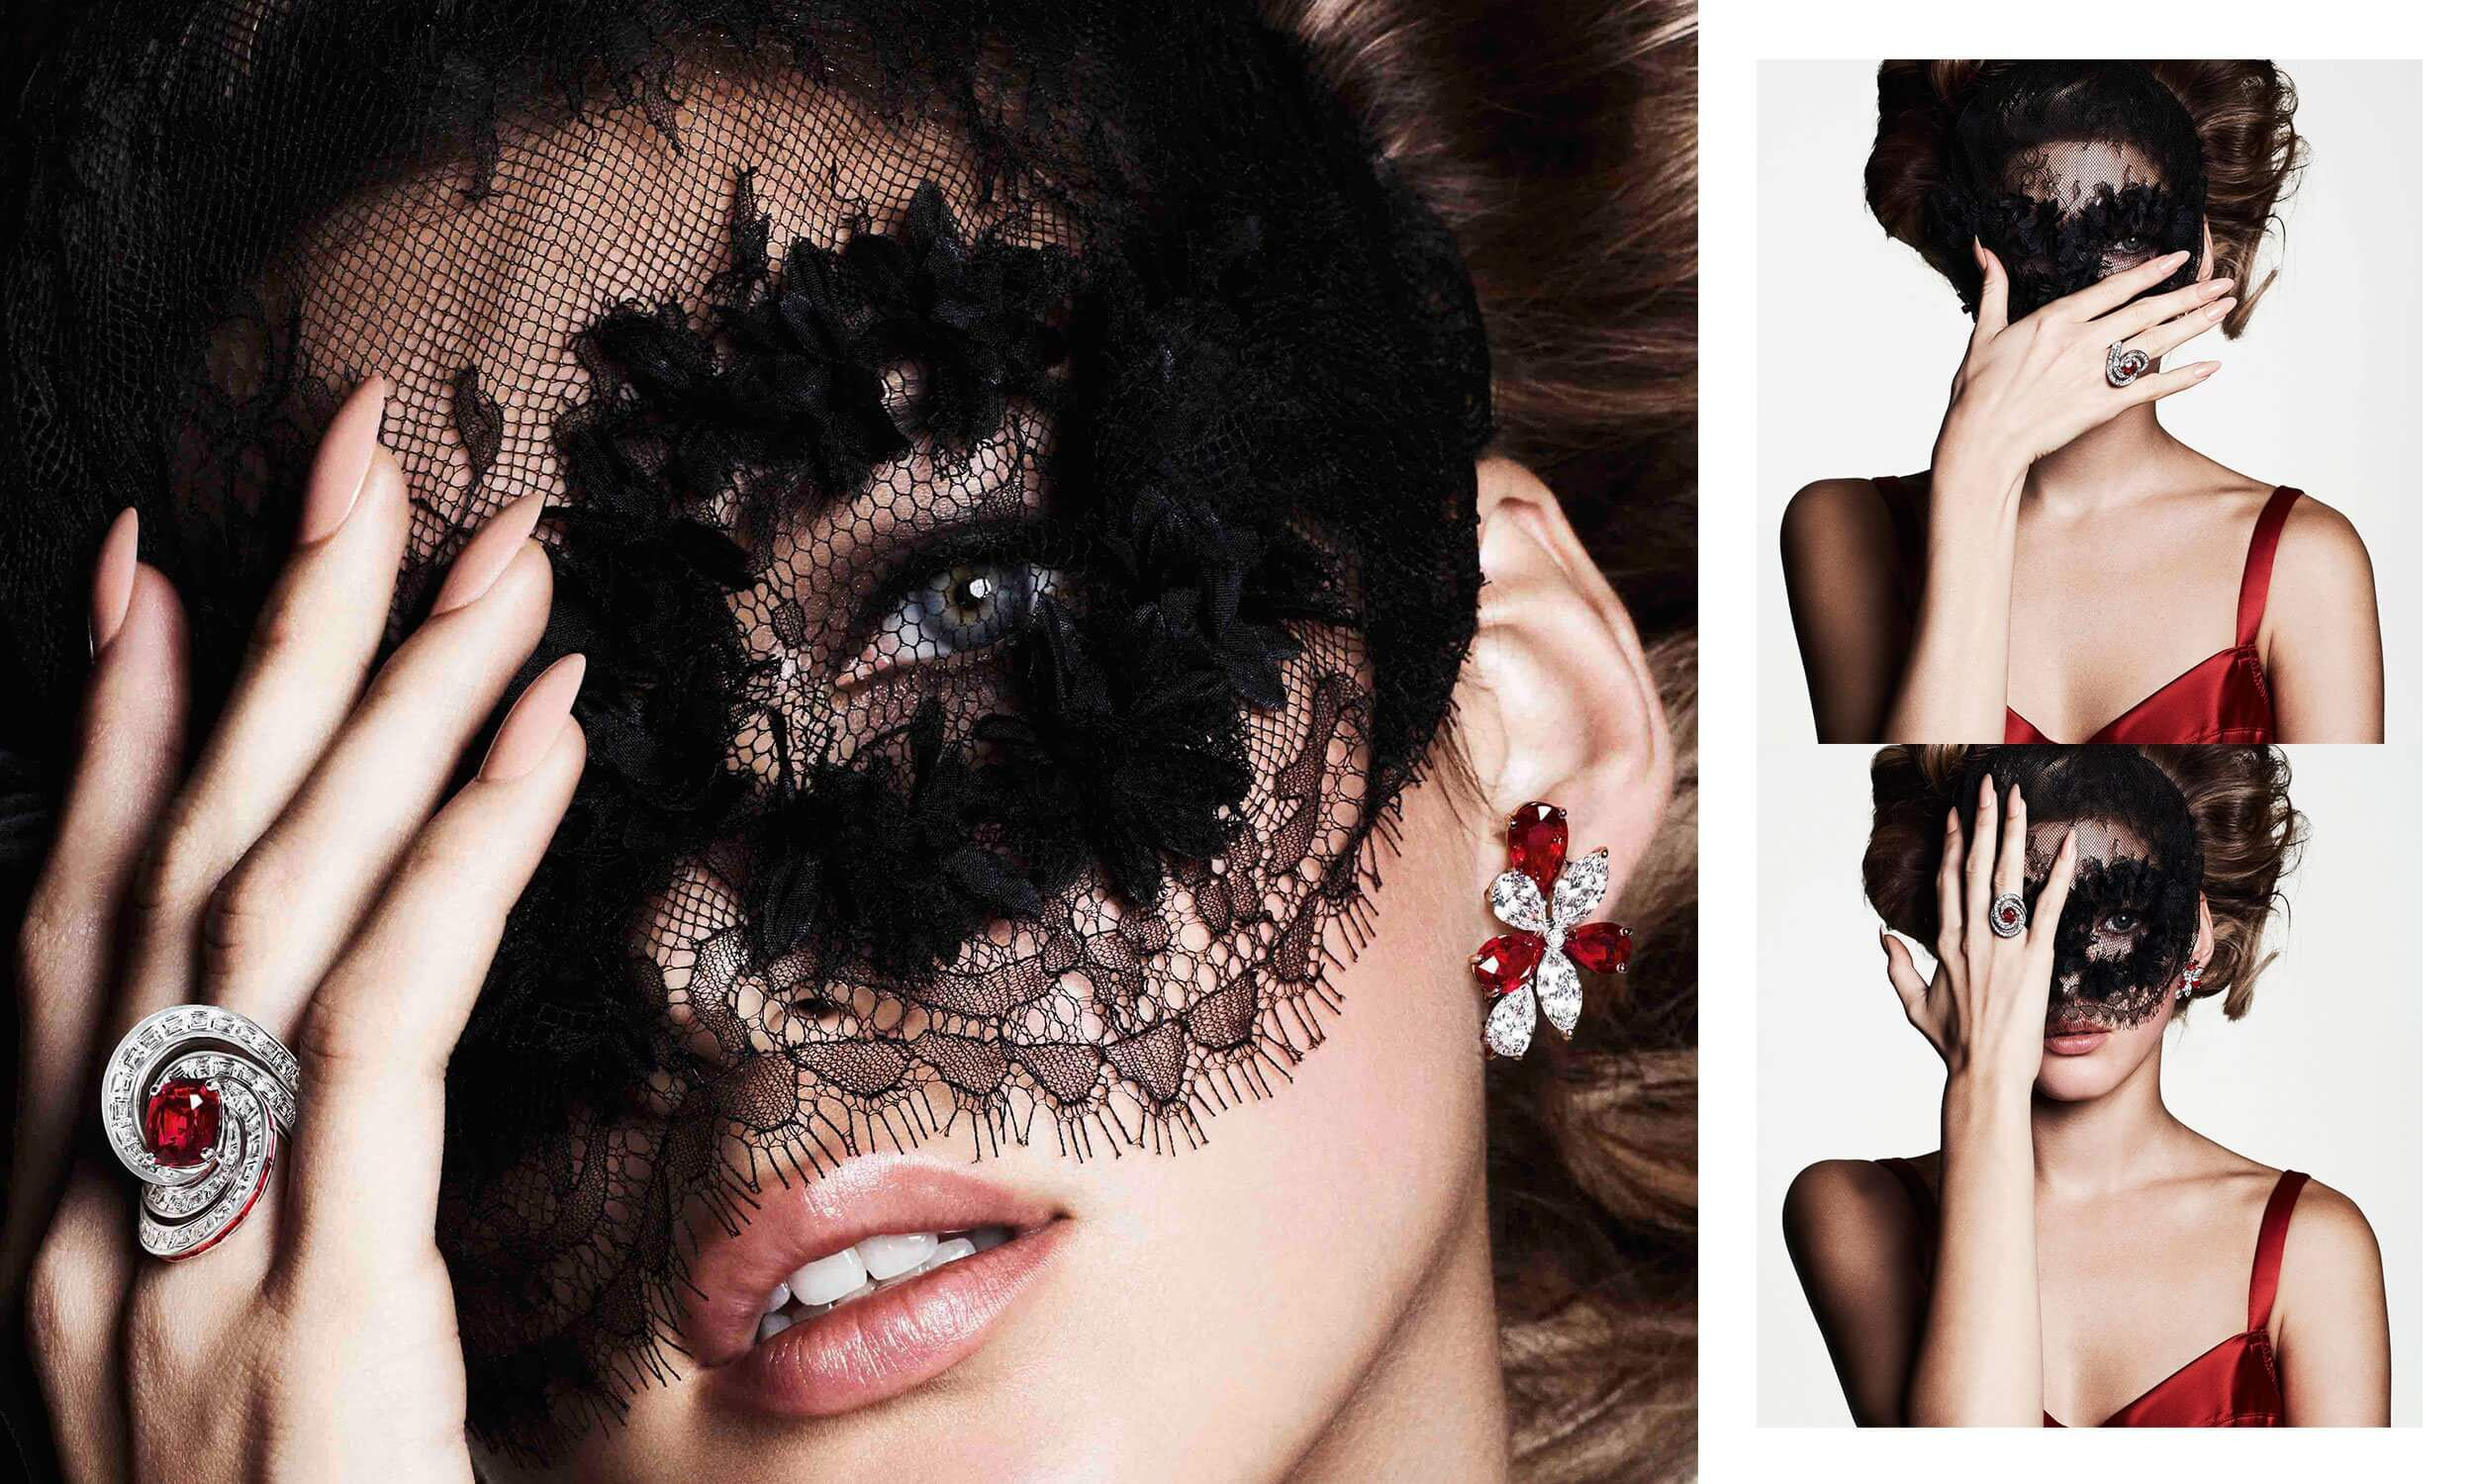 A model wearing Graff ruby and white diamond high jewellery earrings and ring